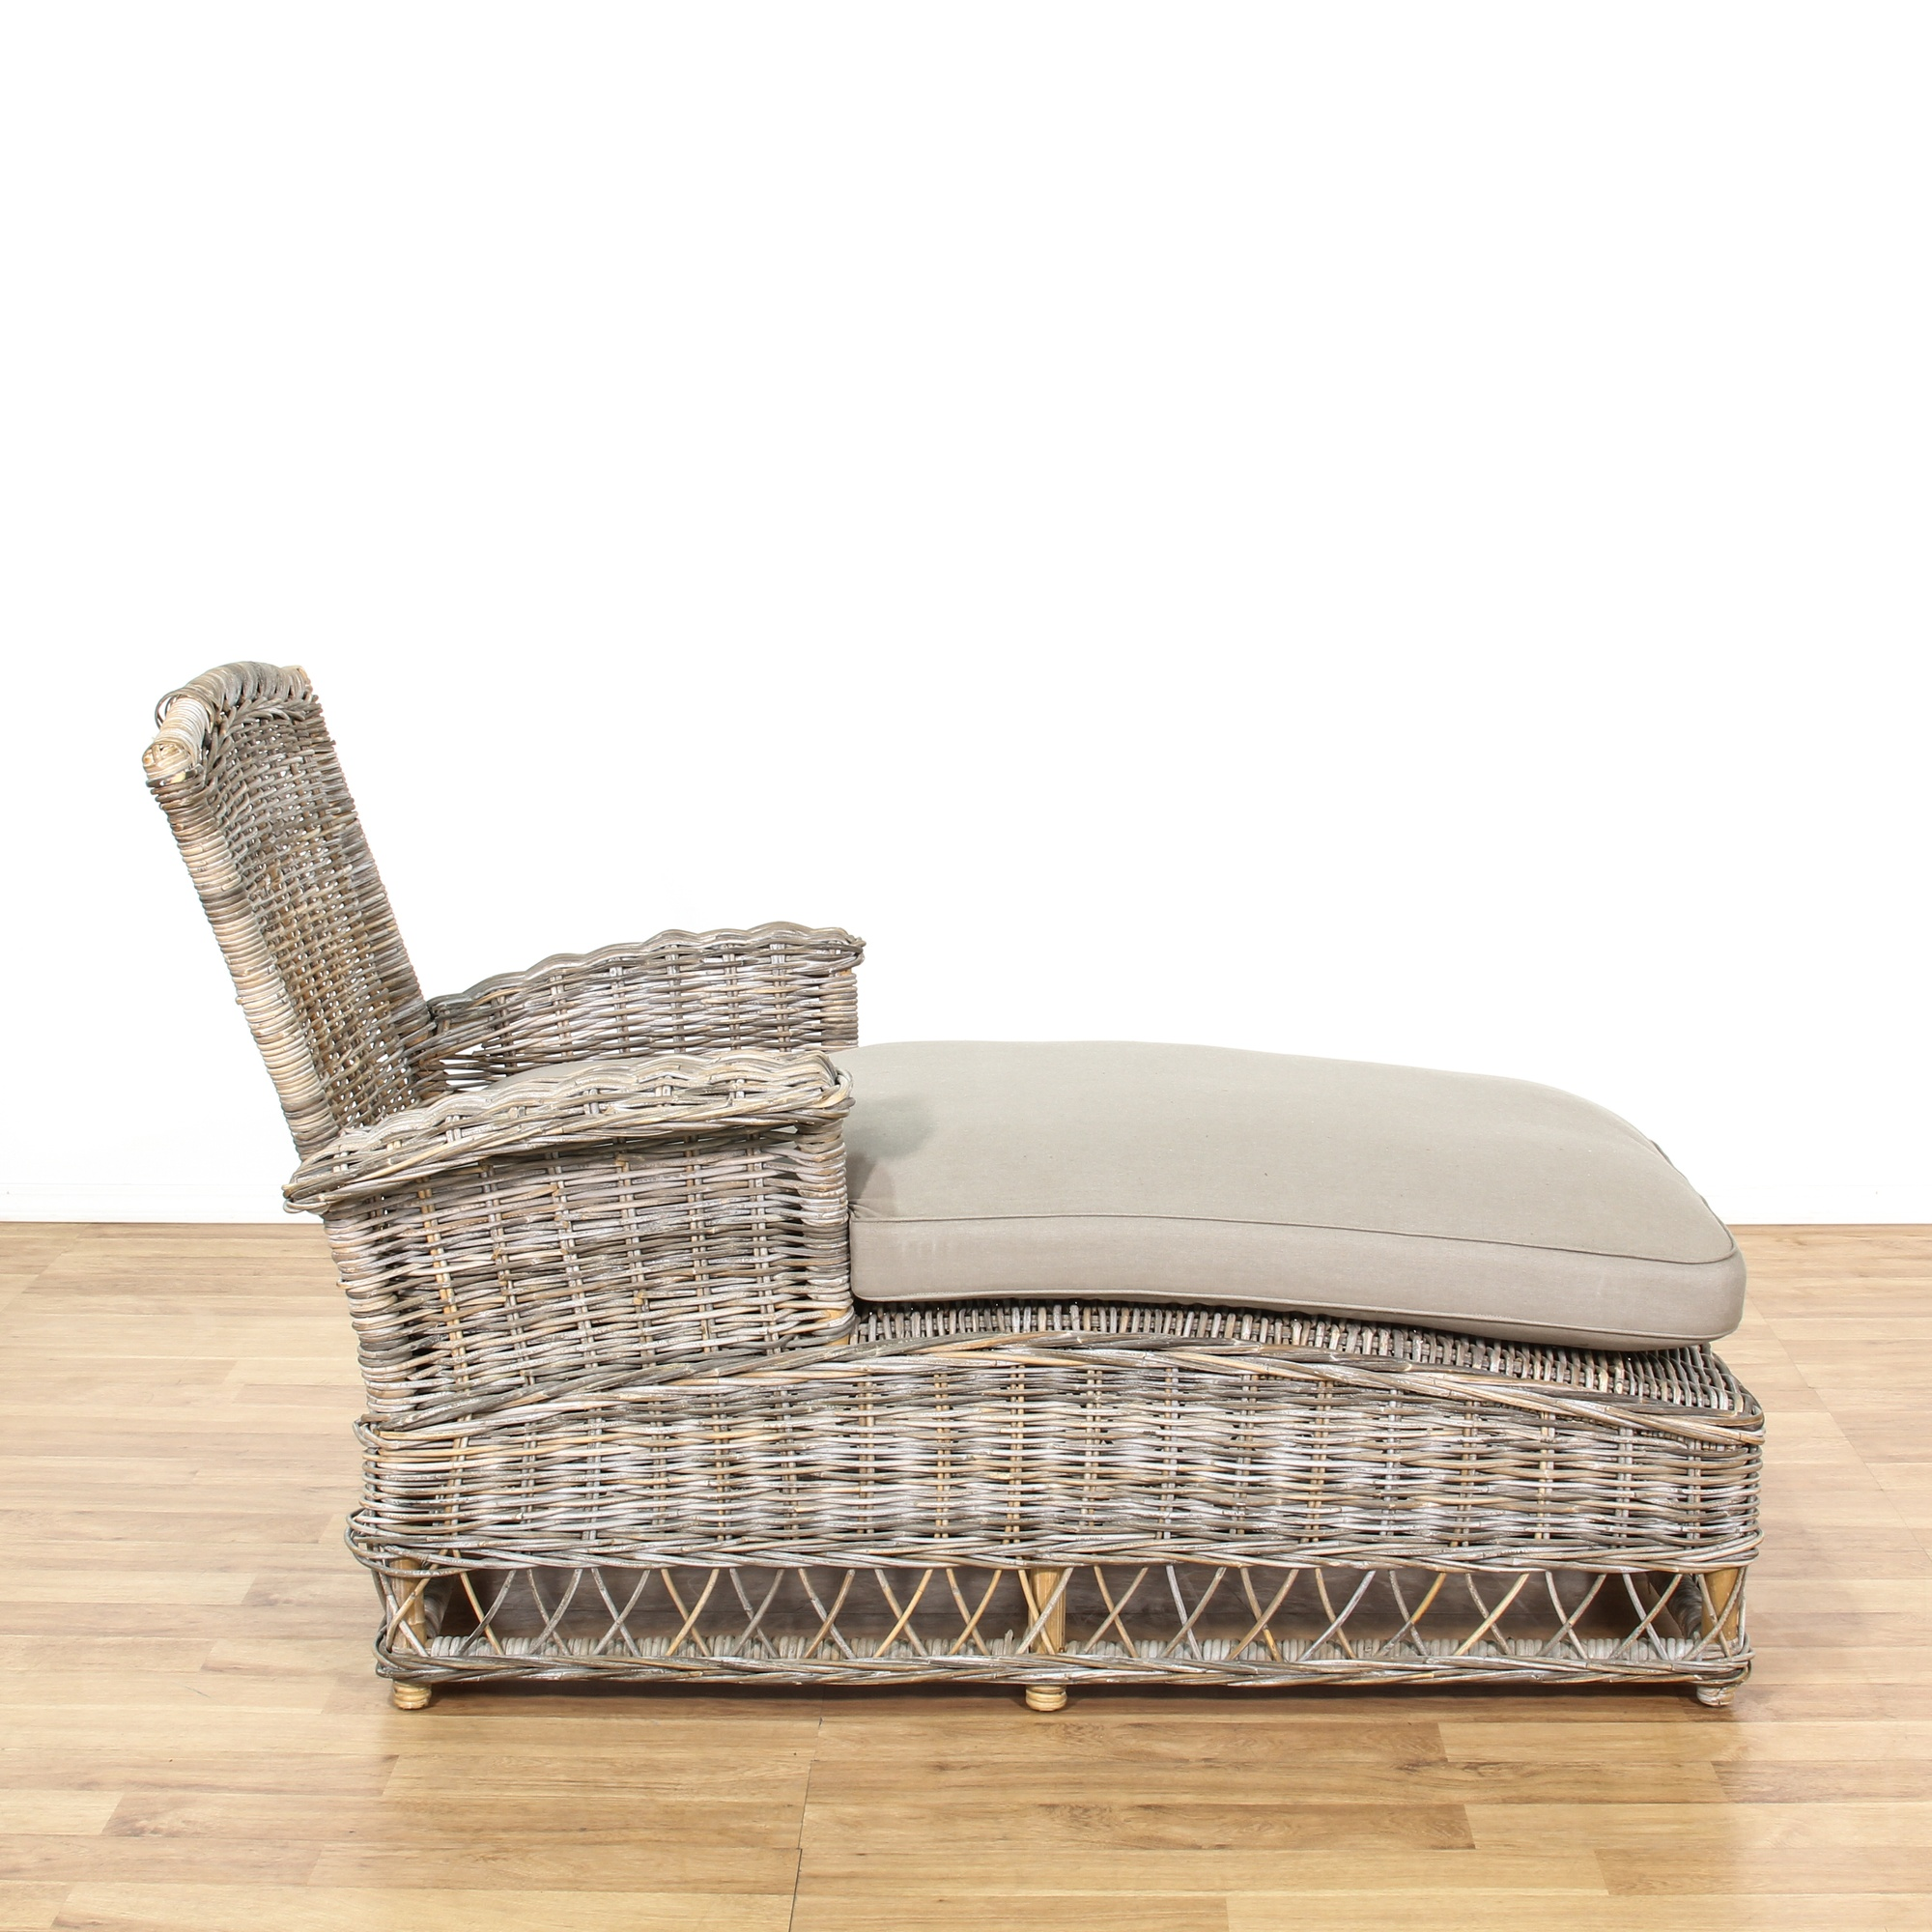 Driftwood Wicker Outdoor Patio Chaise Lounge Loveseat